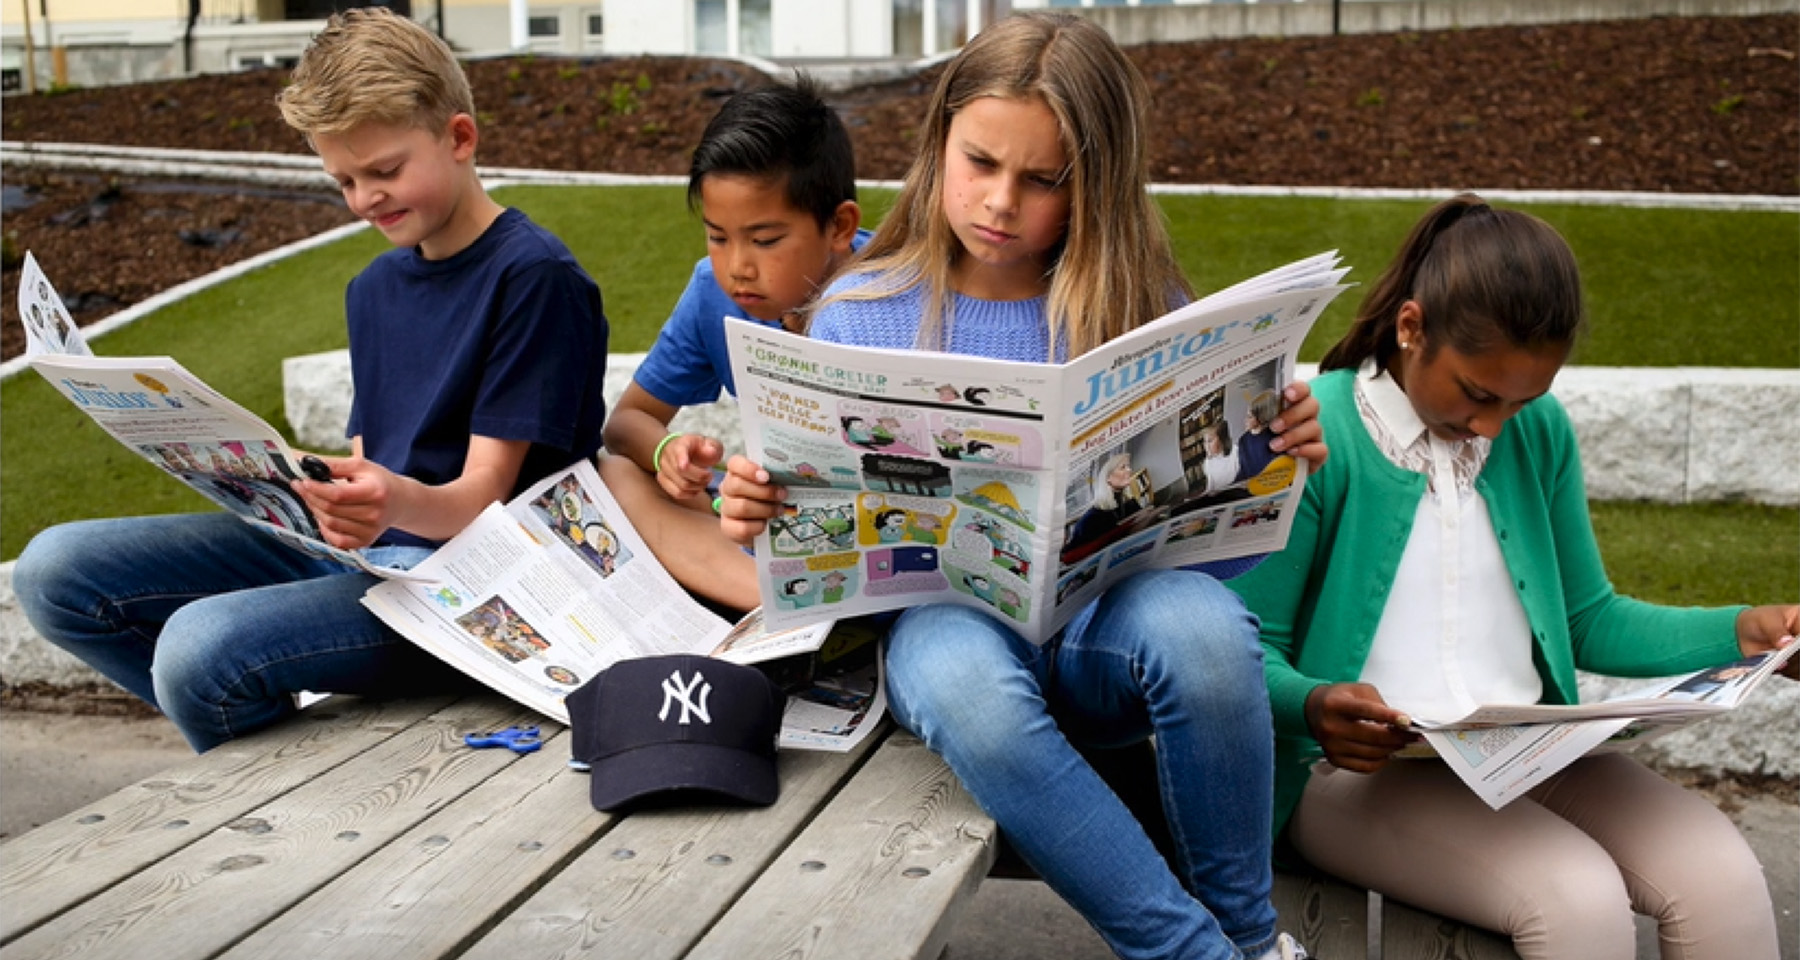 Aftenposten customises print news for next generation